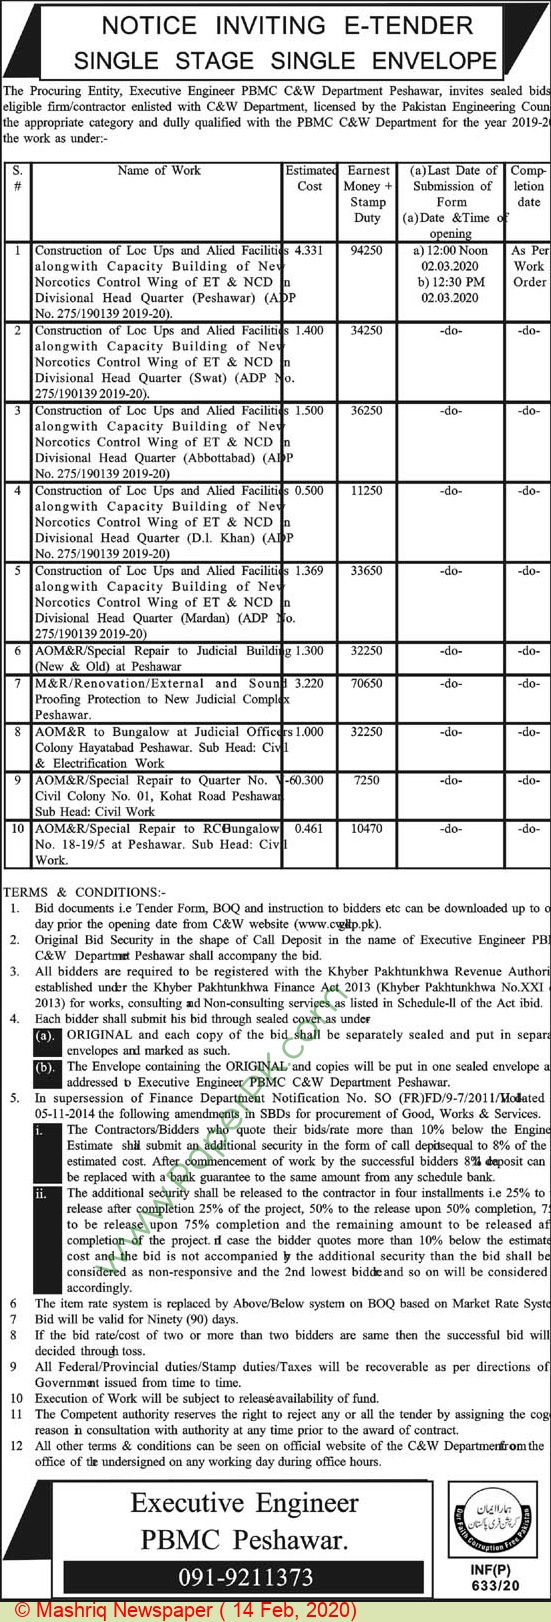 C & W Department Peshawar Tender Notice